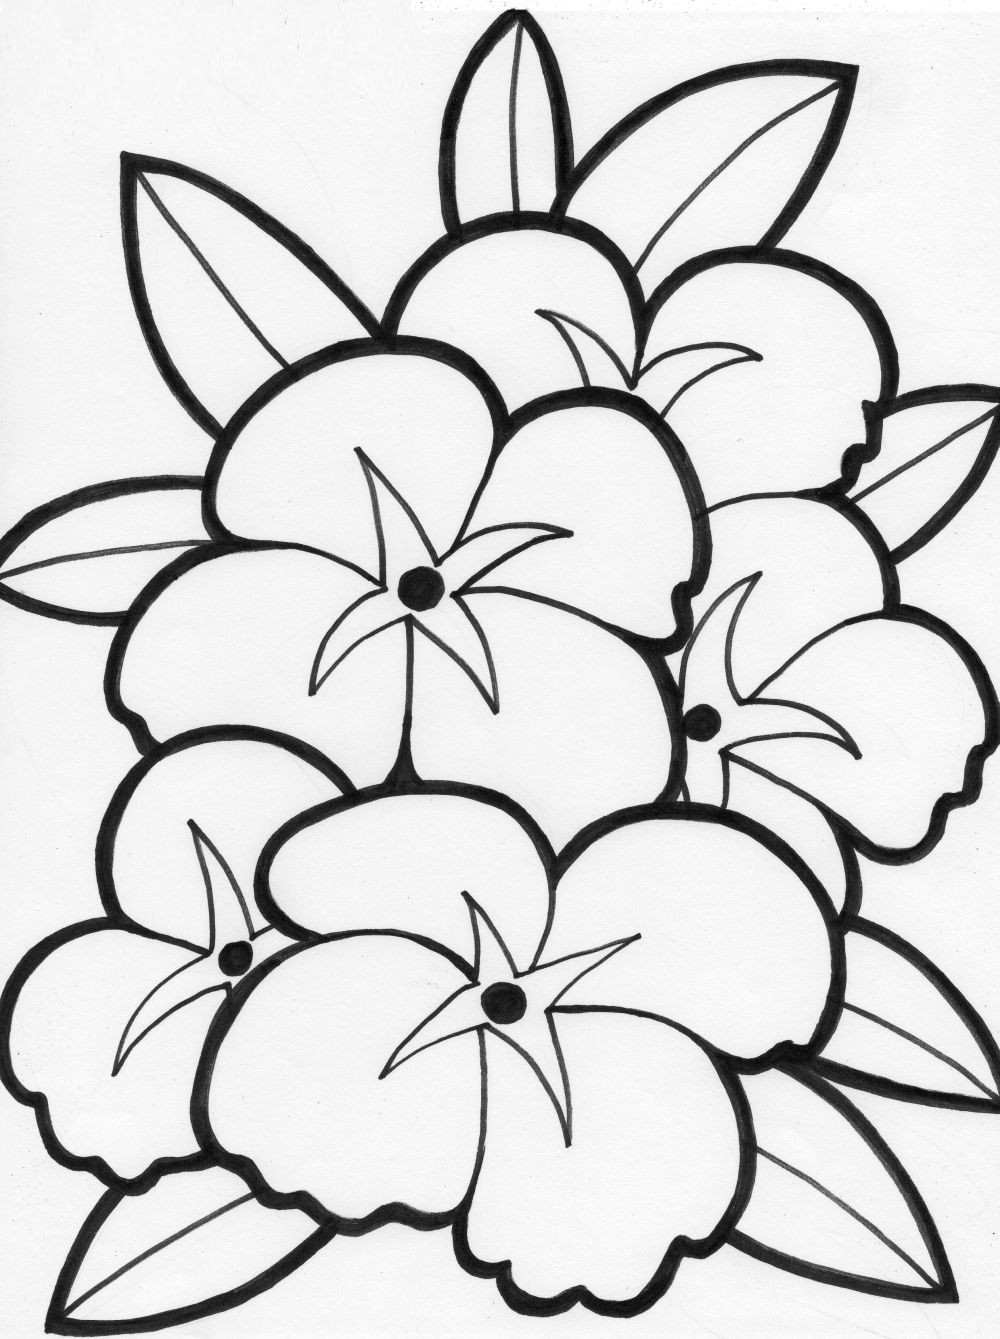 Coloring_Pages_Of_Flowers_For_Teenagers_Difficult_05